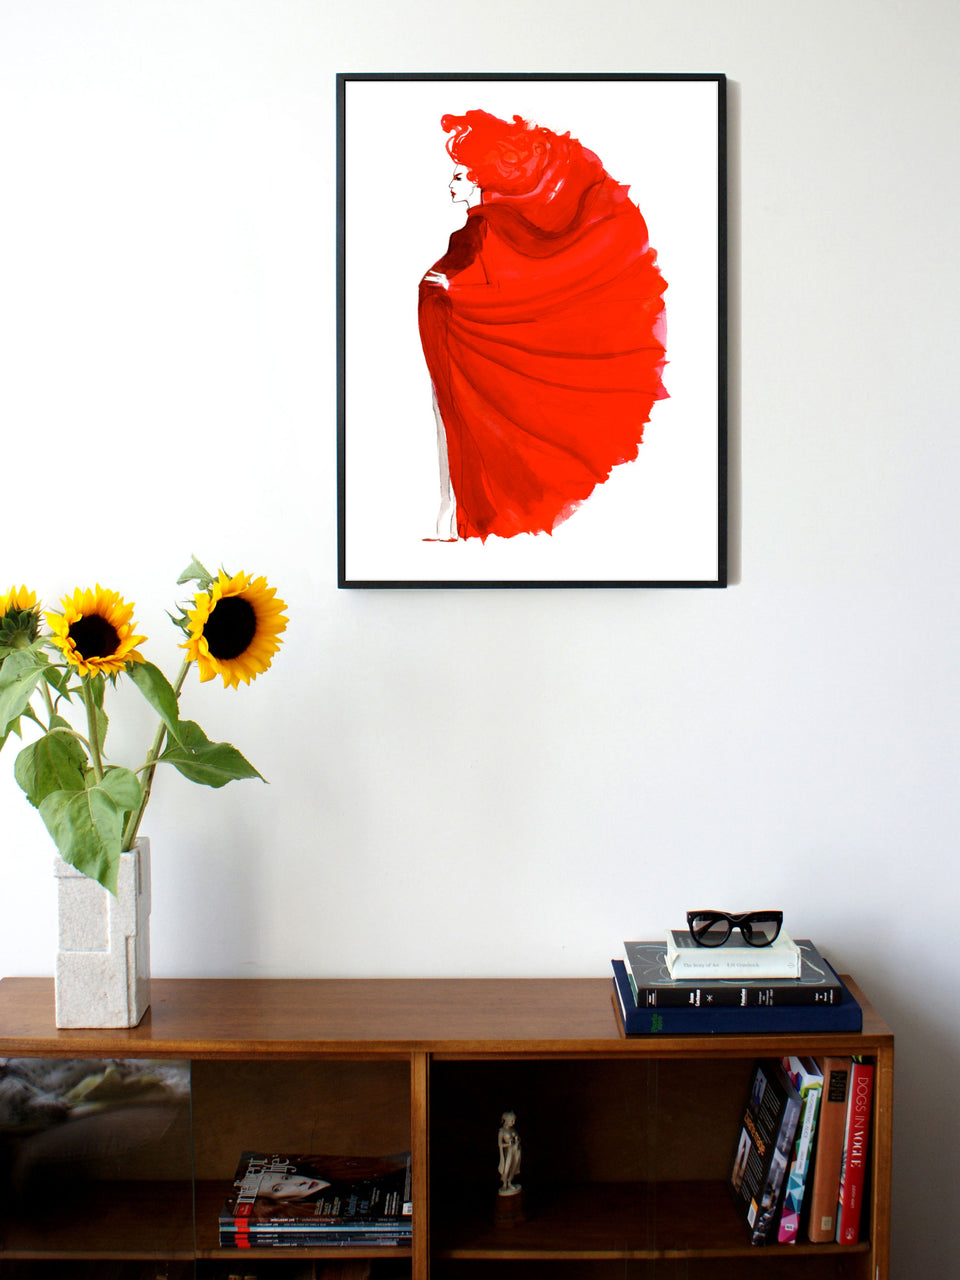 Fashion illustration print of Red by Sjoukje Bierma - woman in red - 60 x 80 cm framed